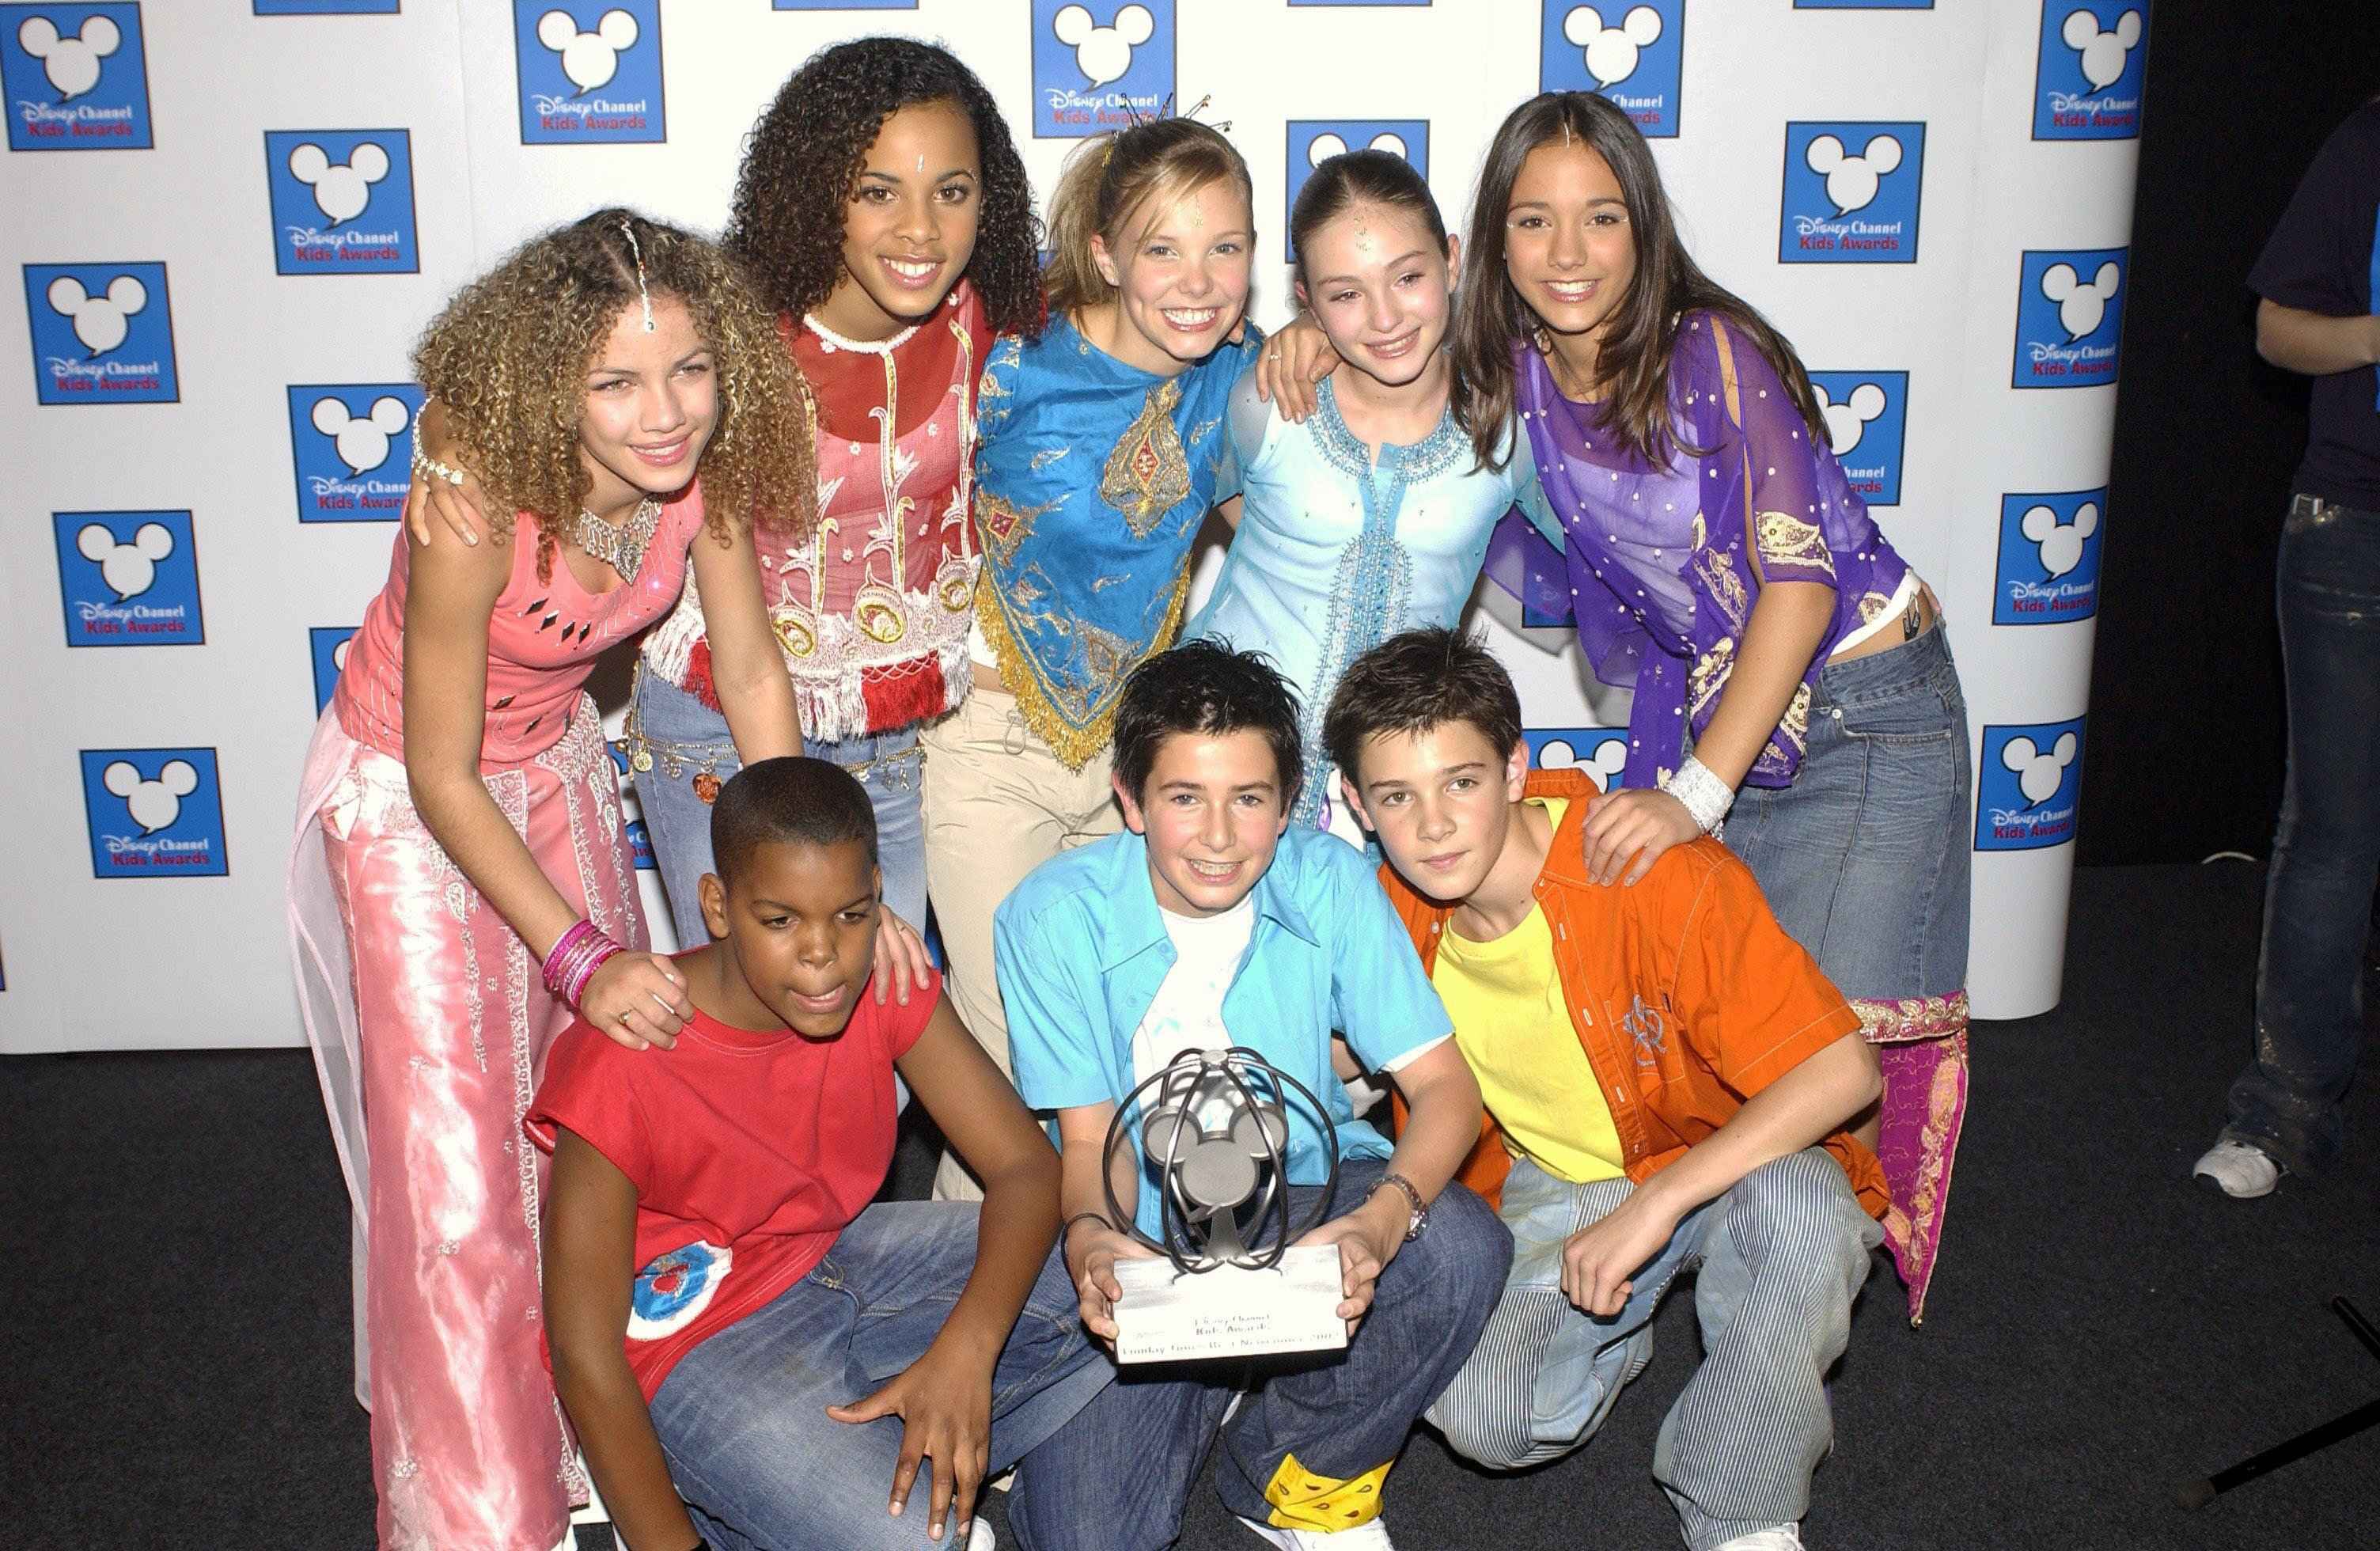 Disney Channel Kids Awards, London Arena, London, Britain - 12 Oct 2002, S Club Juniors - Best Newcomers (Photo by Brian Rasic/Getty Images)